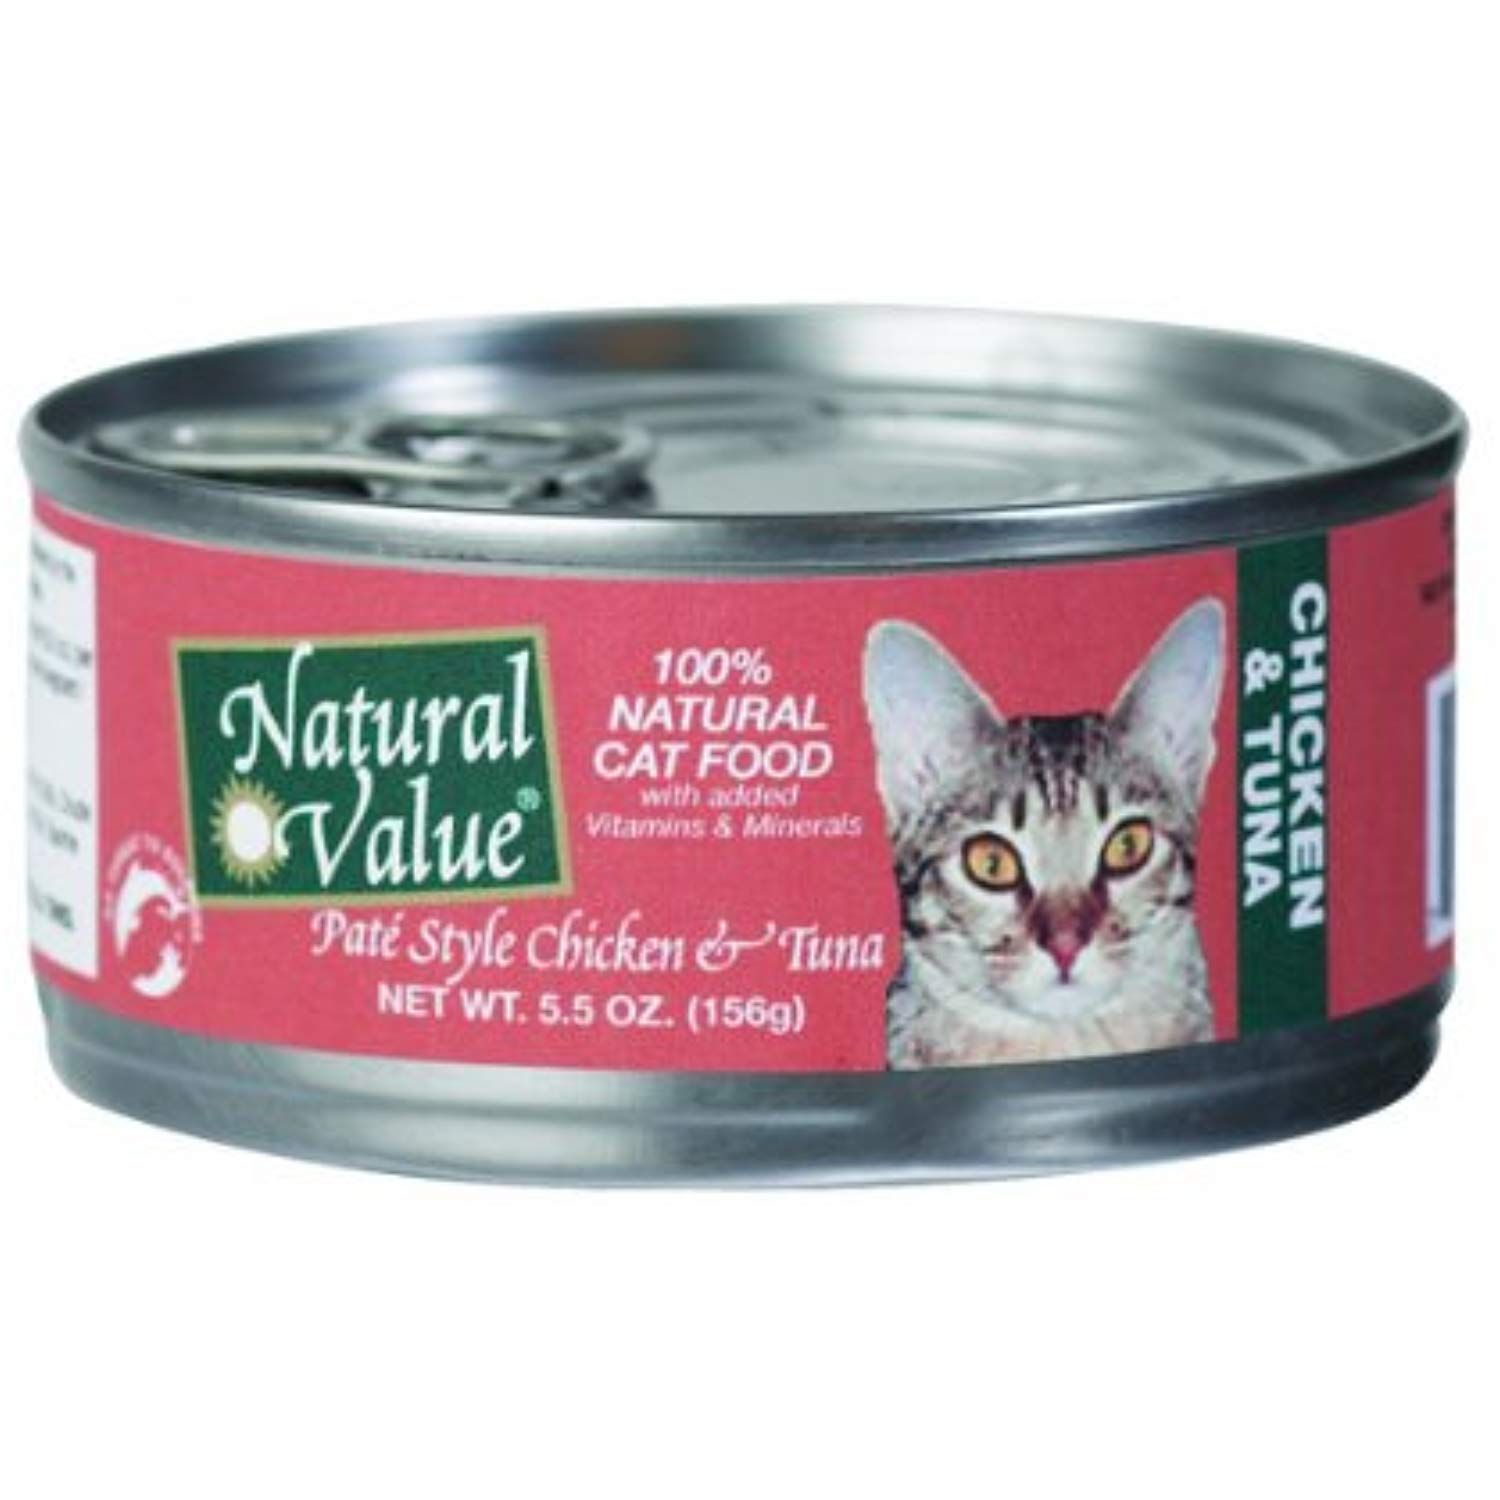 Natural Value Pate Style Chicken And Tuna Cat Food 5 5 Ounce Cans